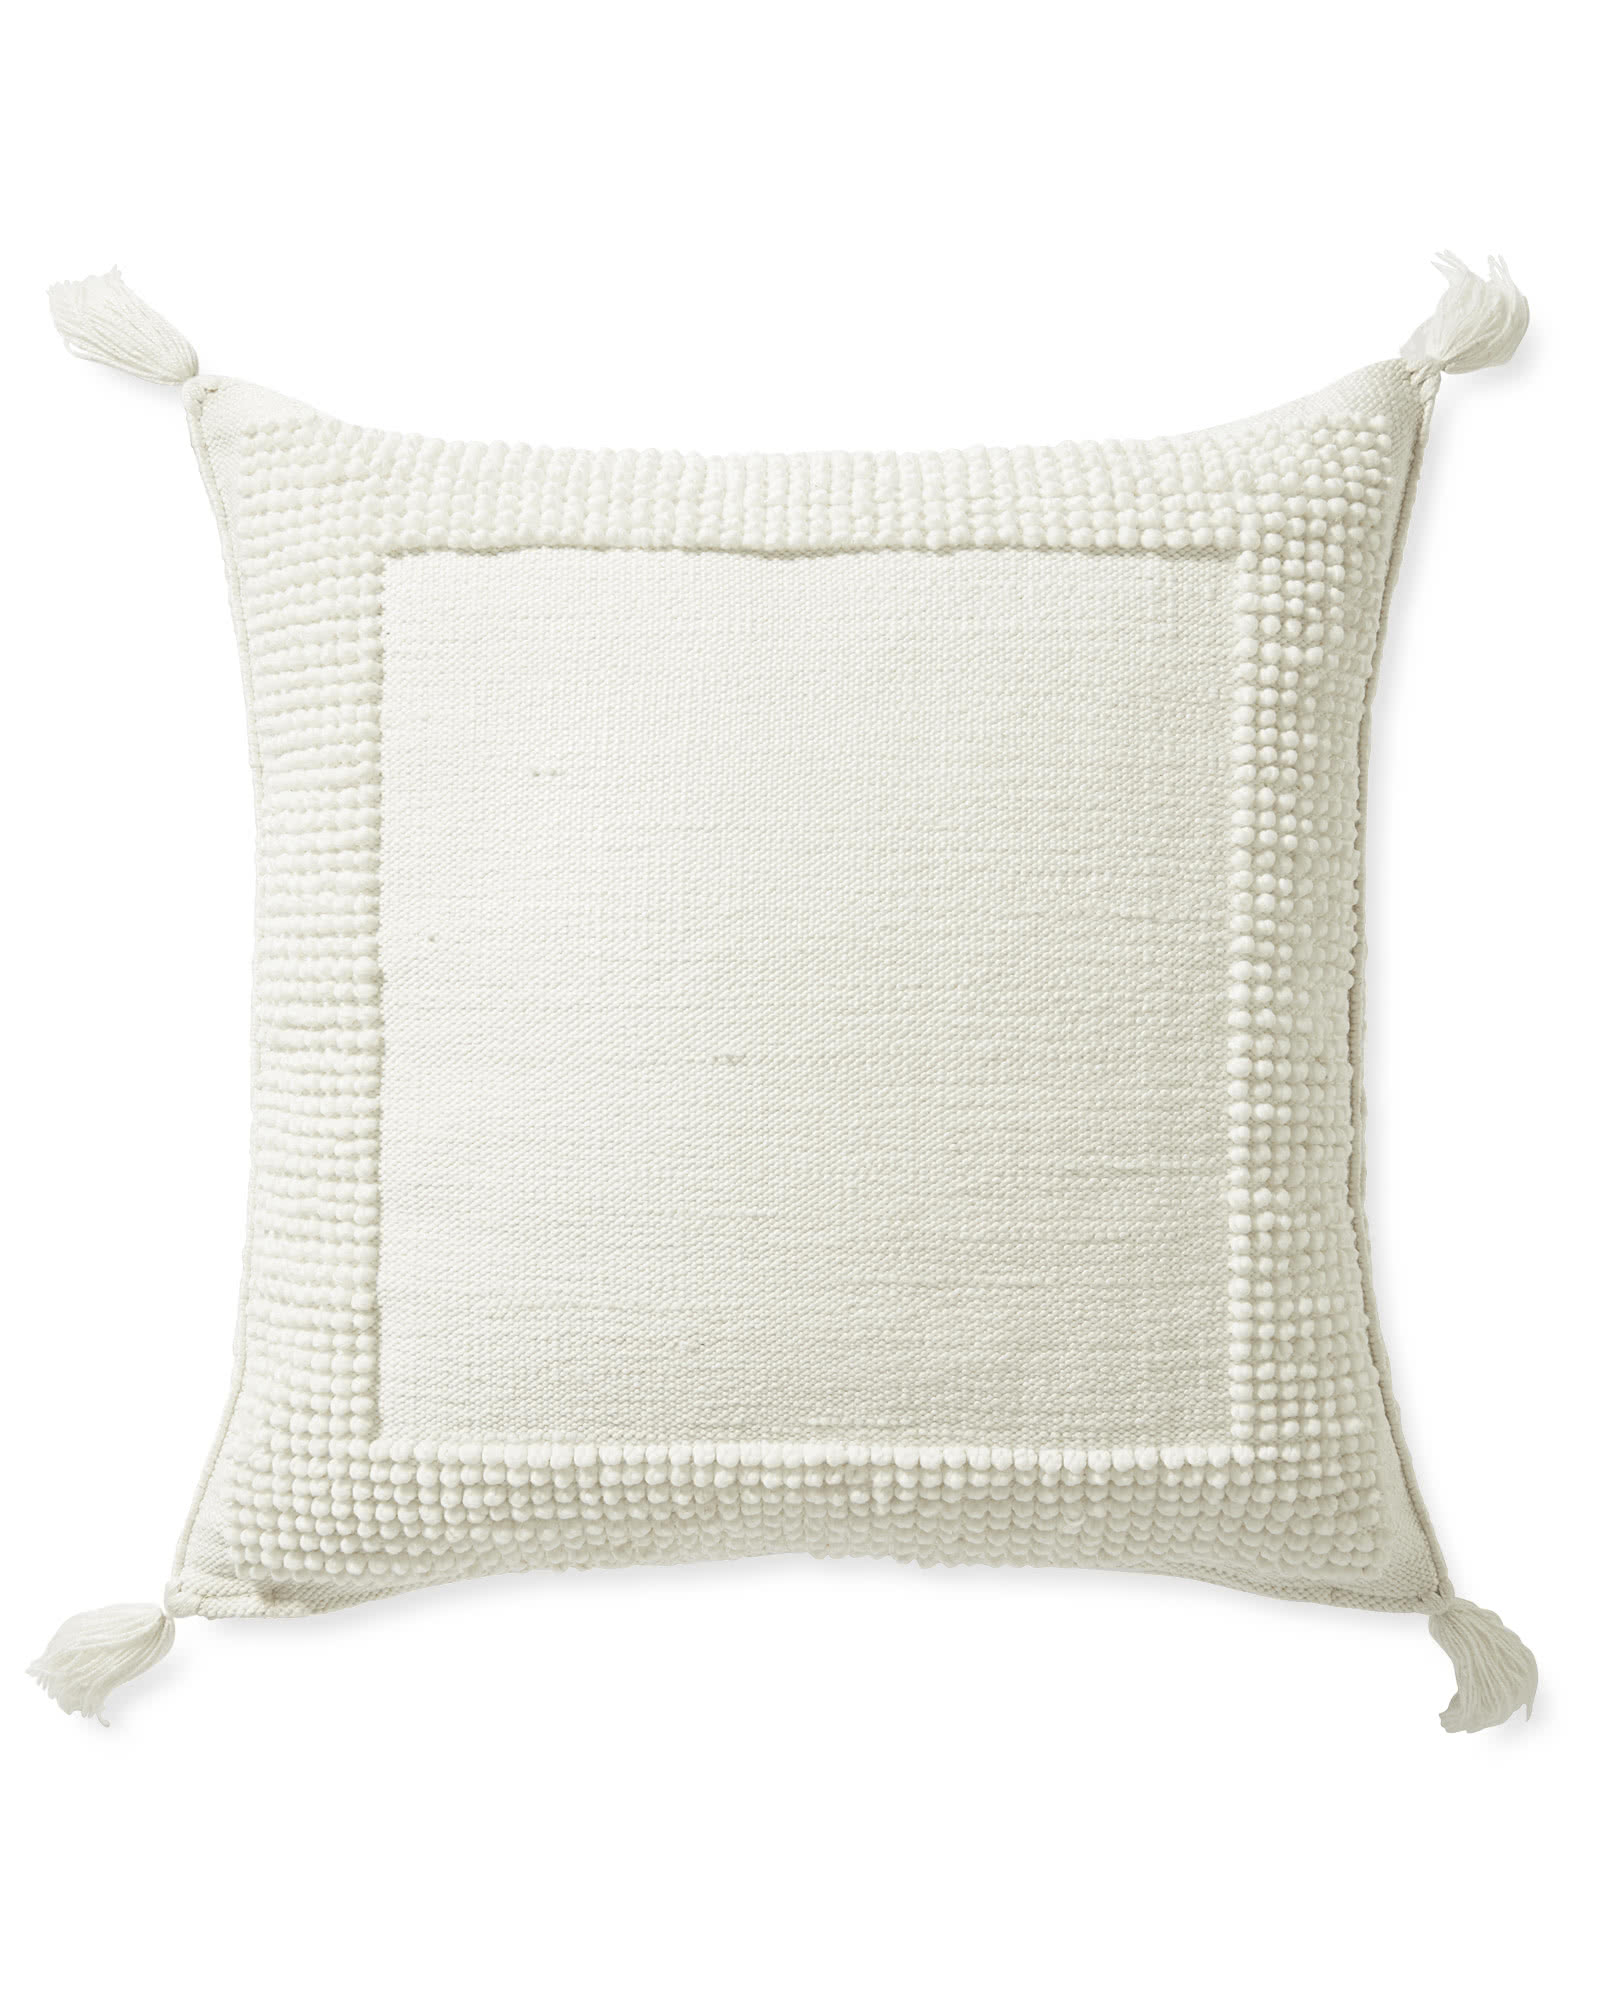 Montecito Floor Pillow, White